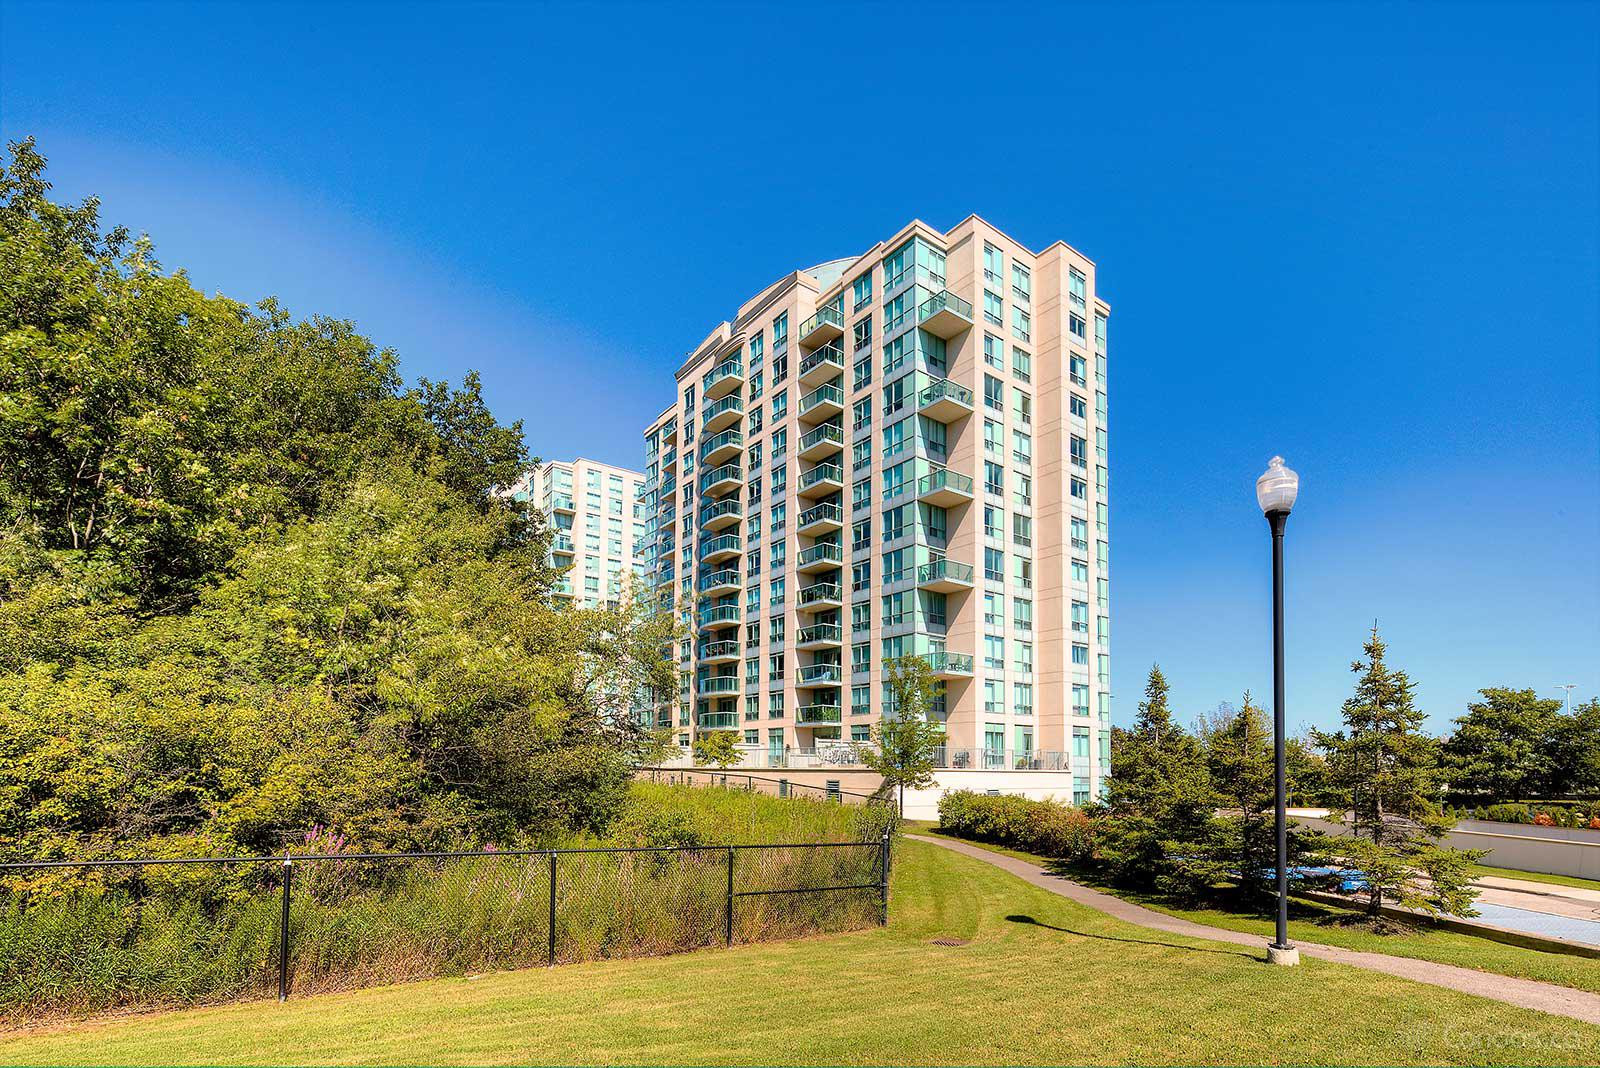 Parkway Place at 2585 Erin Centre Blvd, Mississauga 1